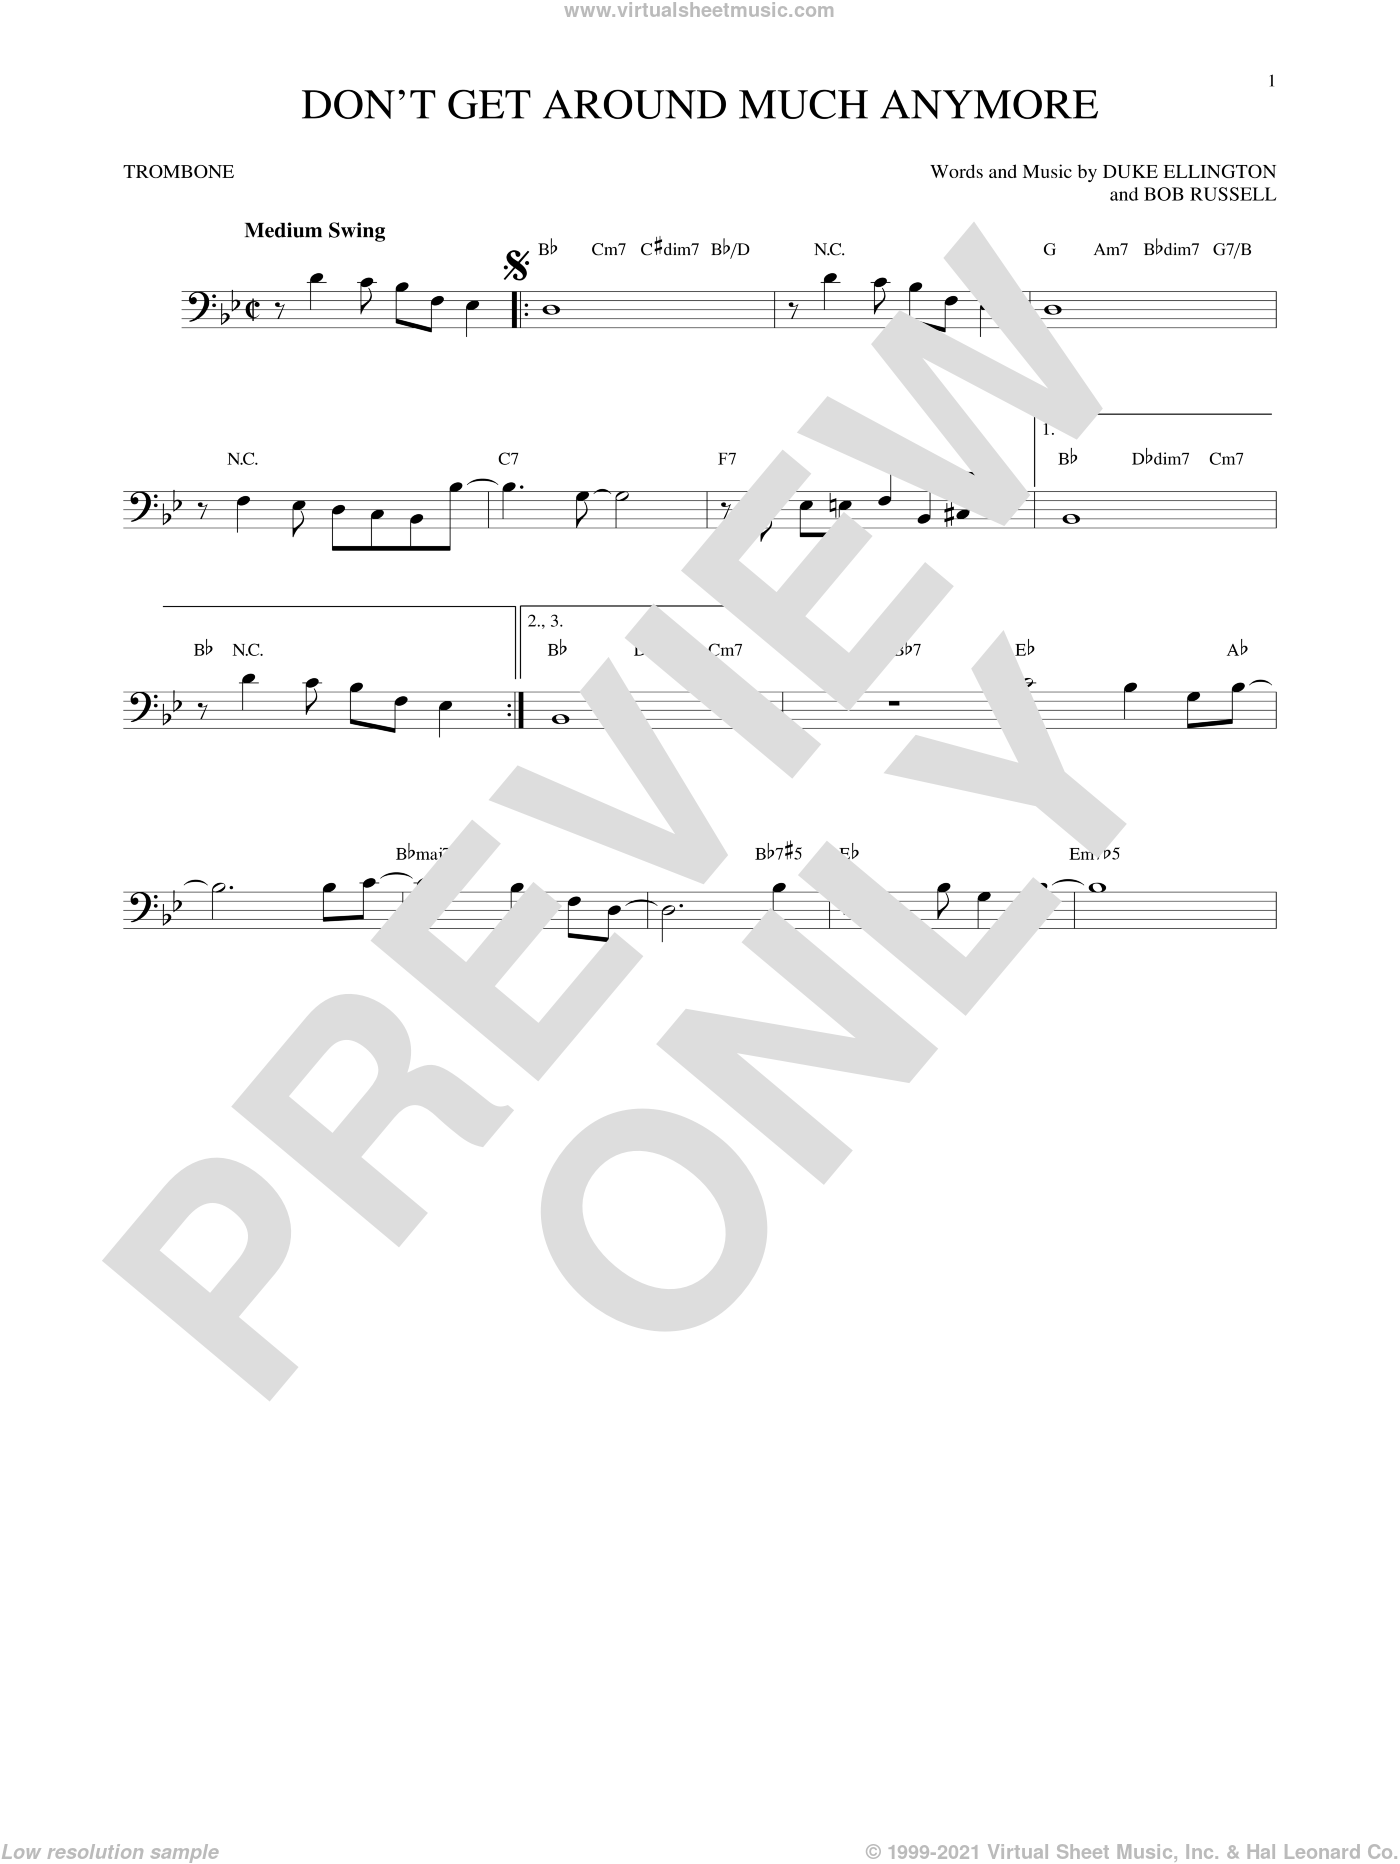 Don't Get Around Much Anymore sheet music for trombone solo by Duke Ellington and Bob Russell. Score Image Preview.